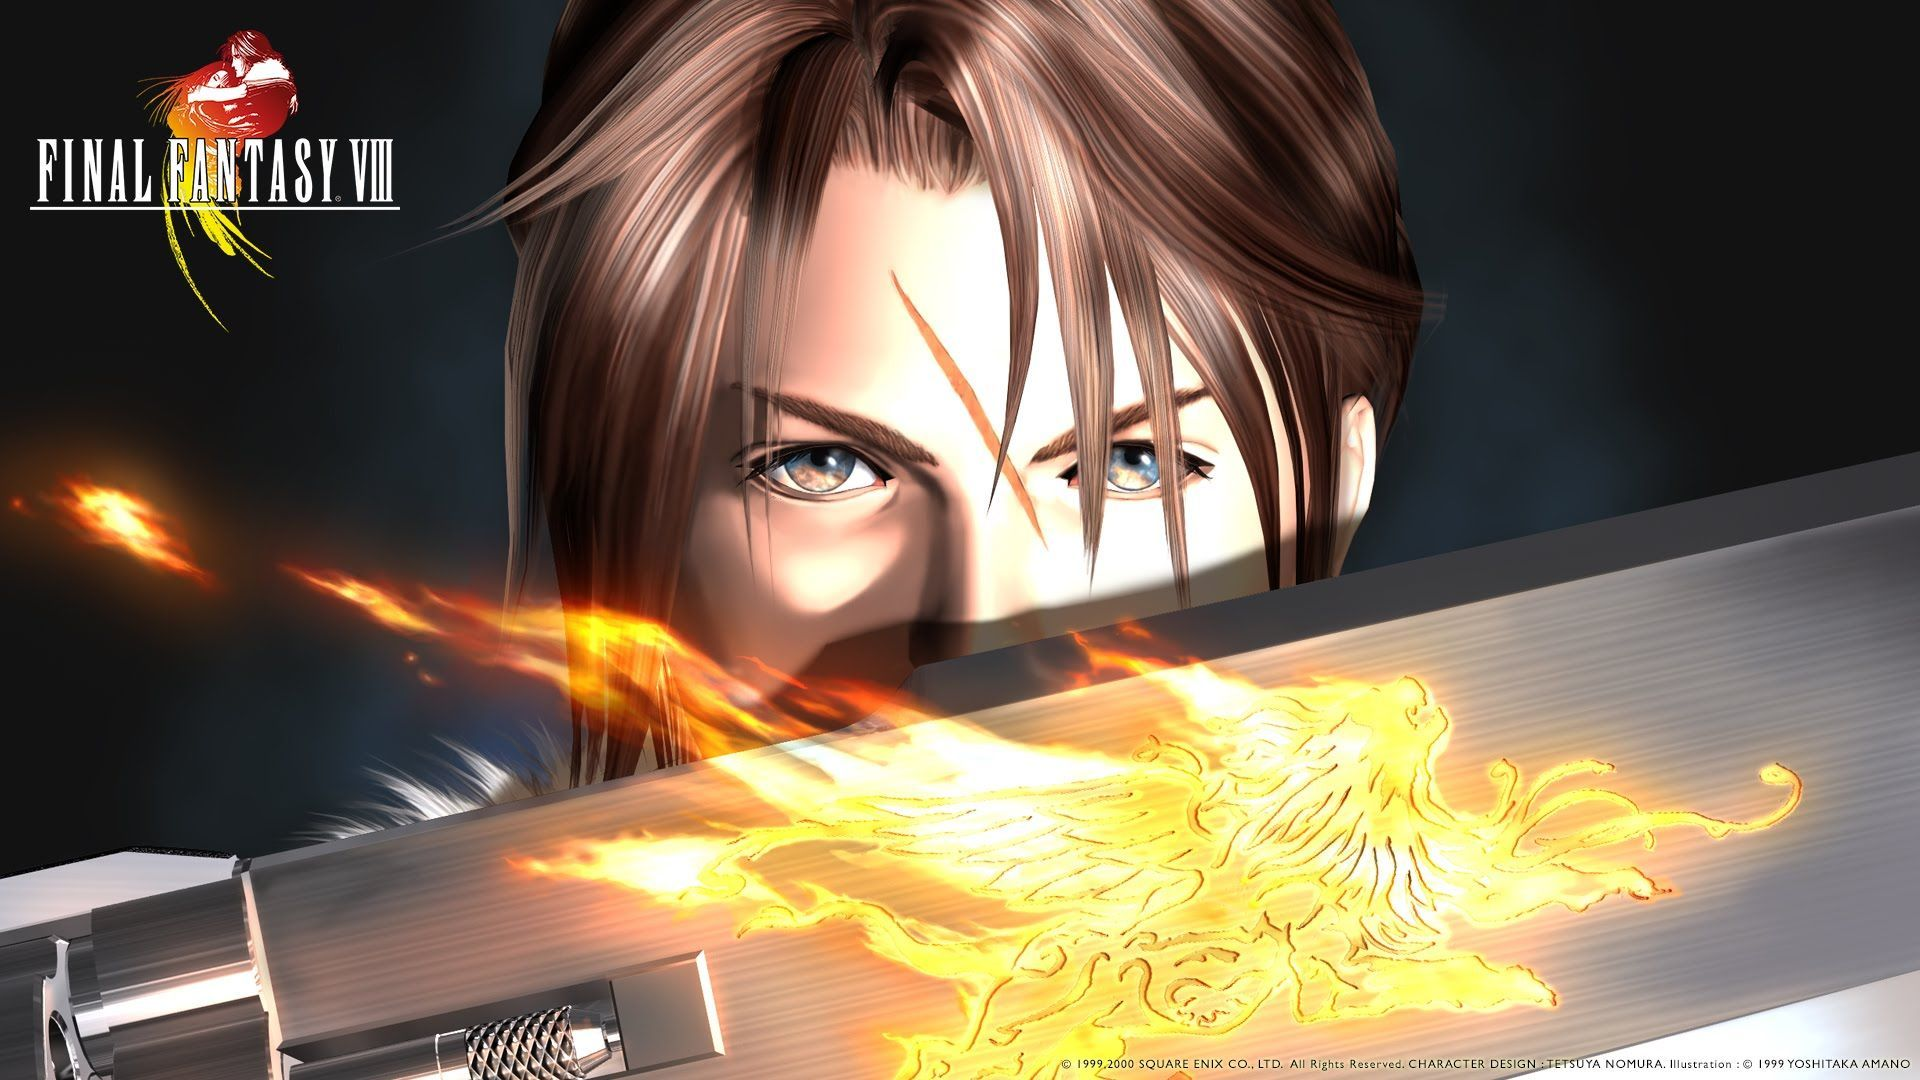 Gaming Show Final Fantasy VIII